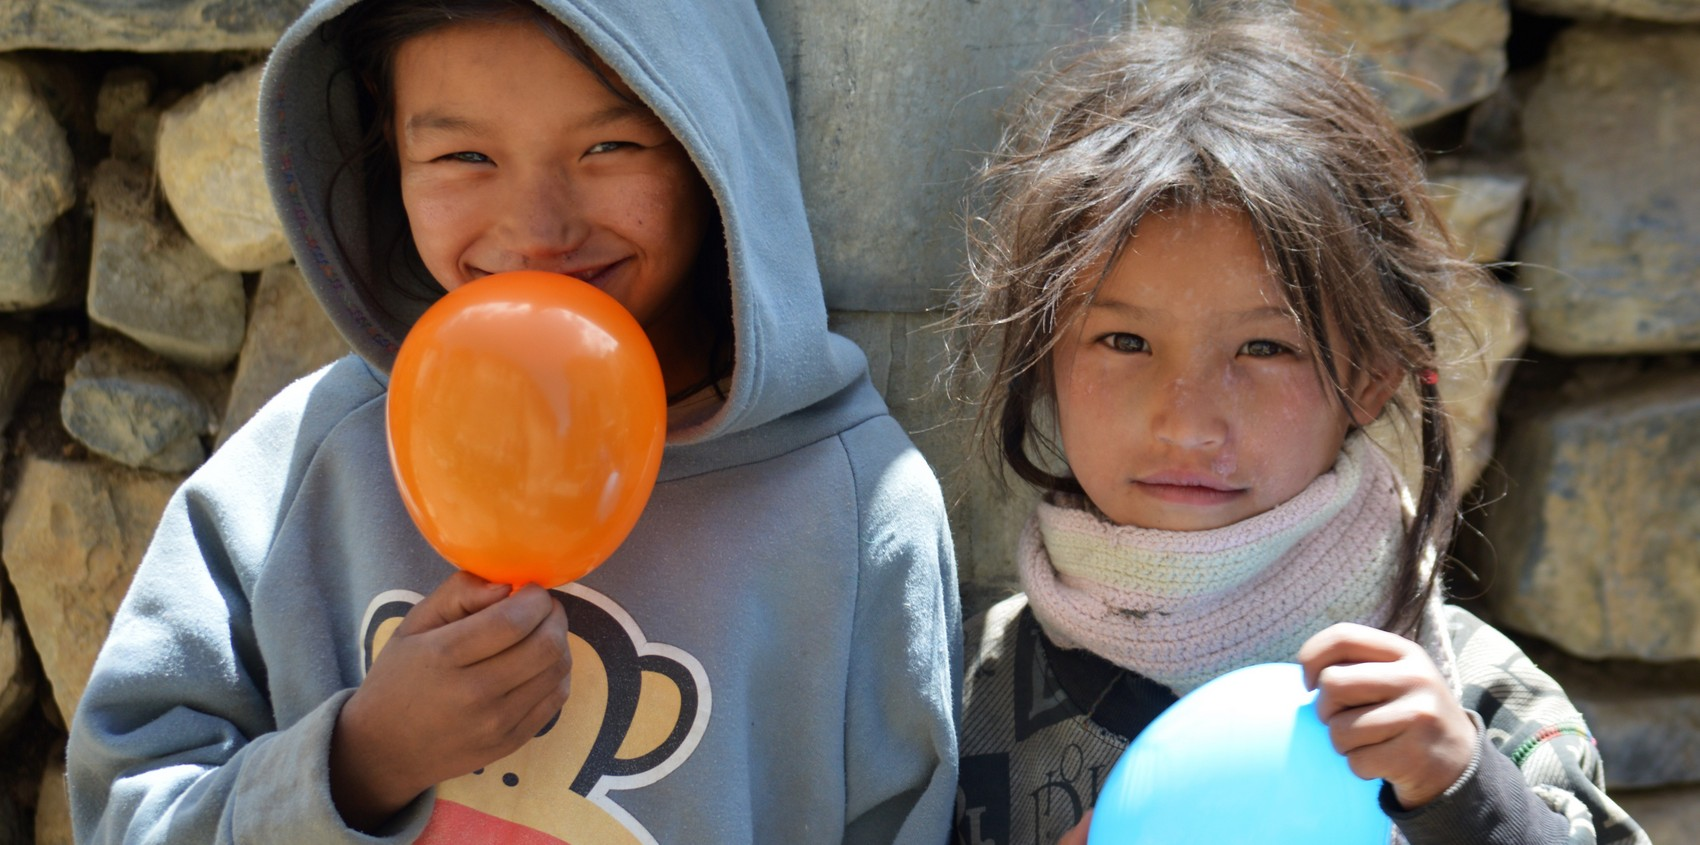 Kids with balloons in Jhong, Nepal